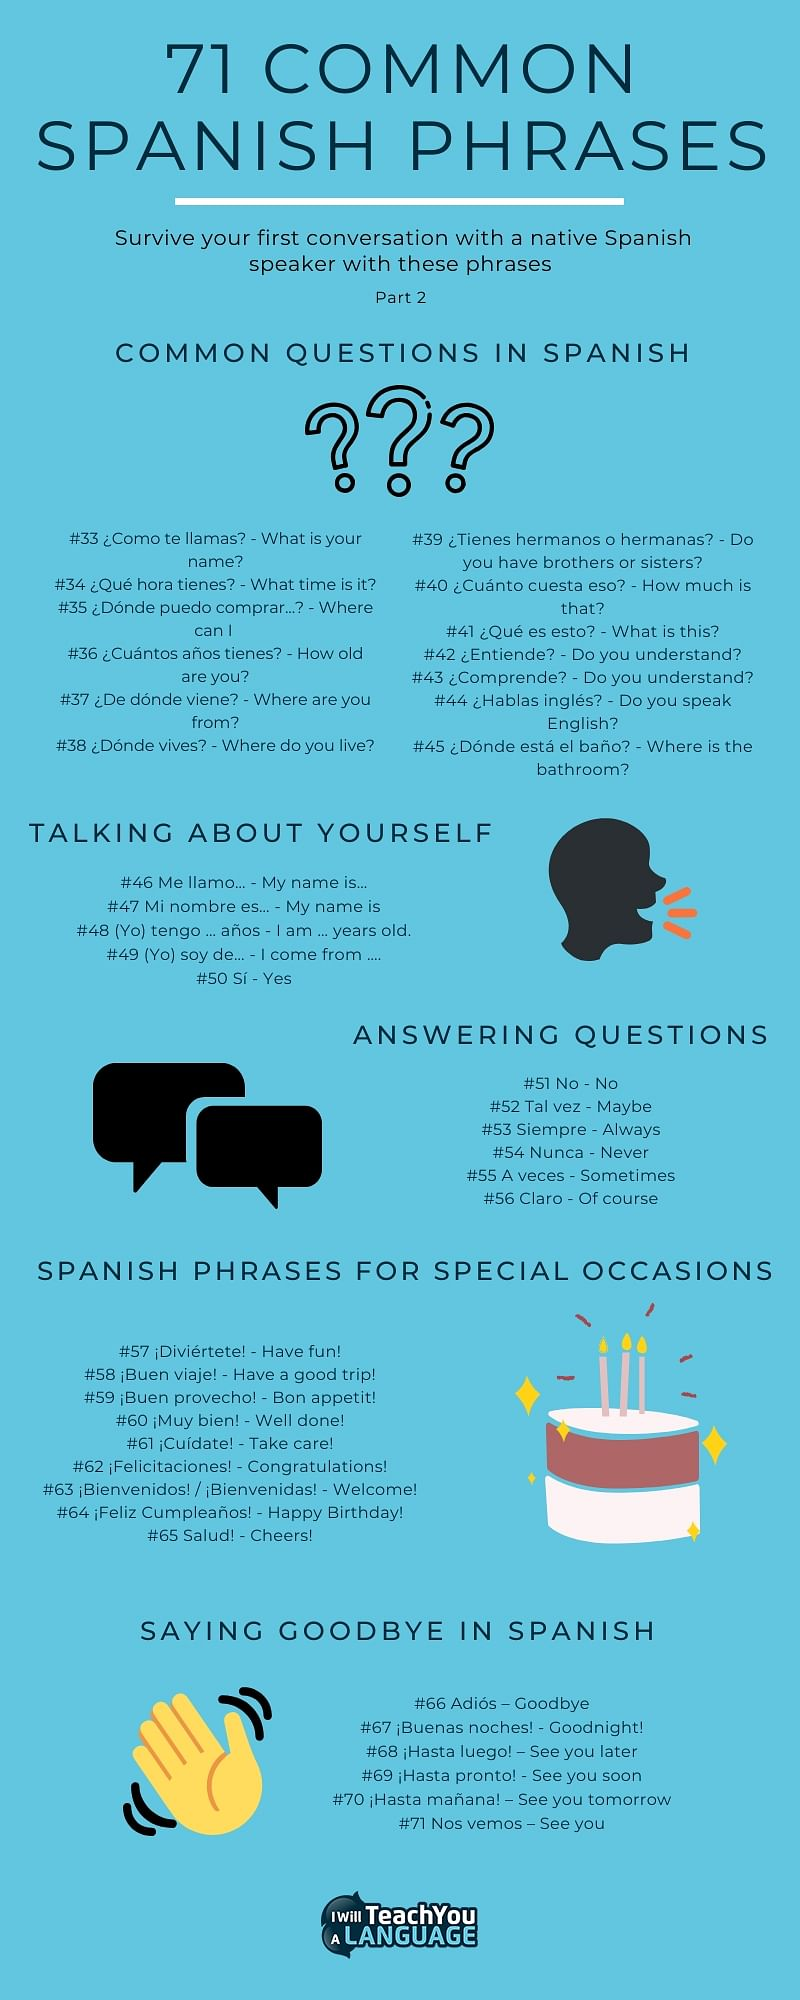 71 Common Spanish Phrases to Survive Any Conversation!